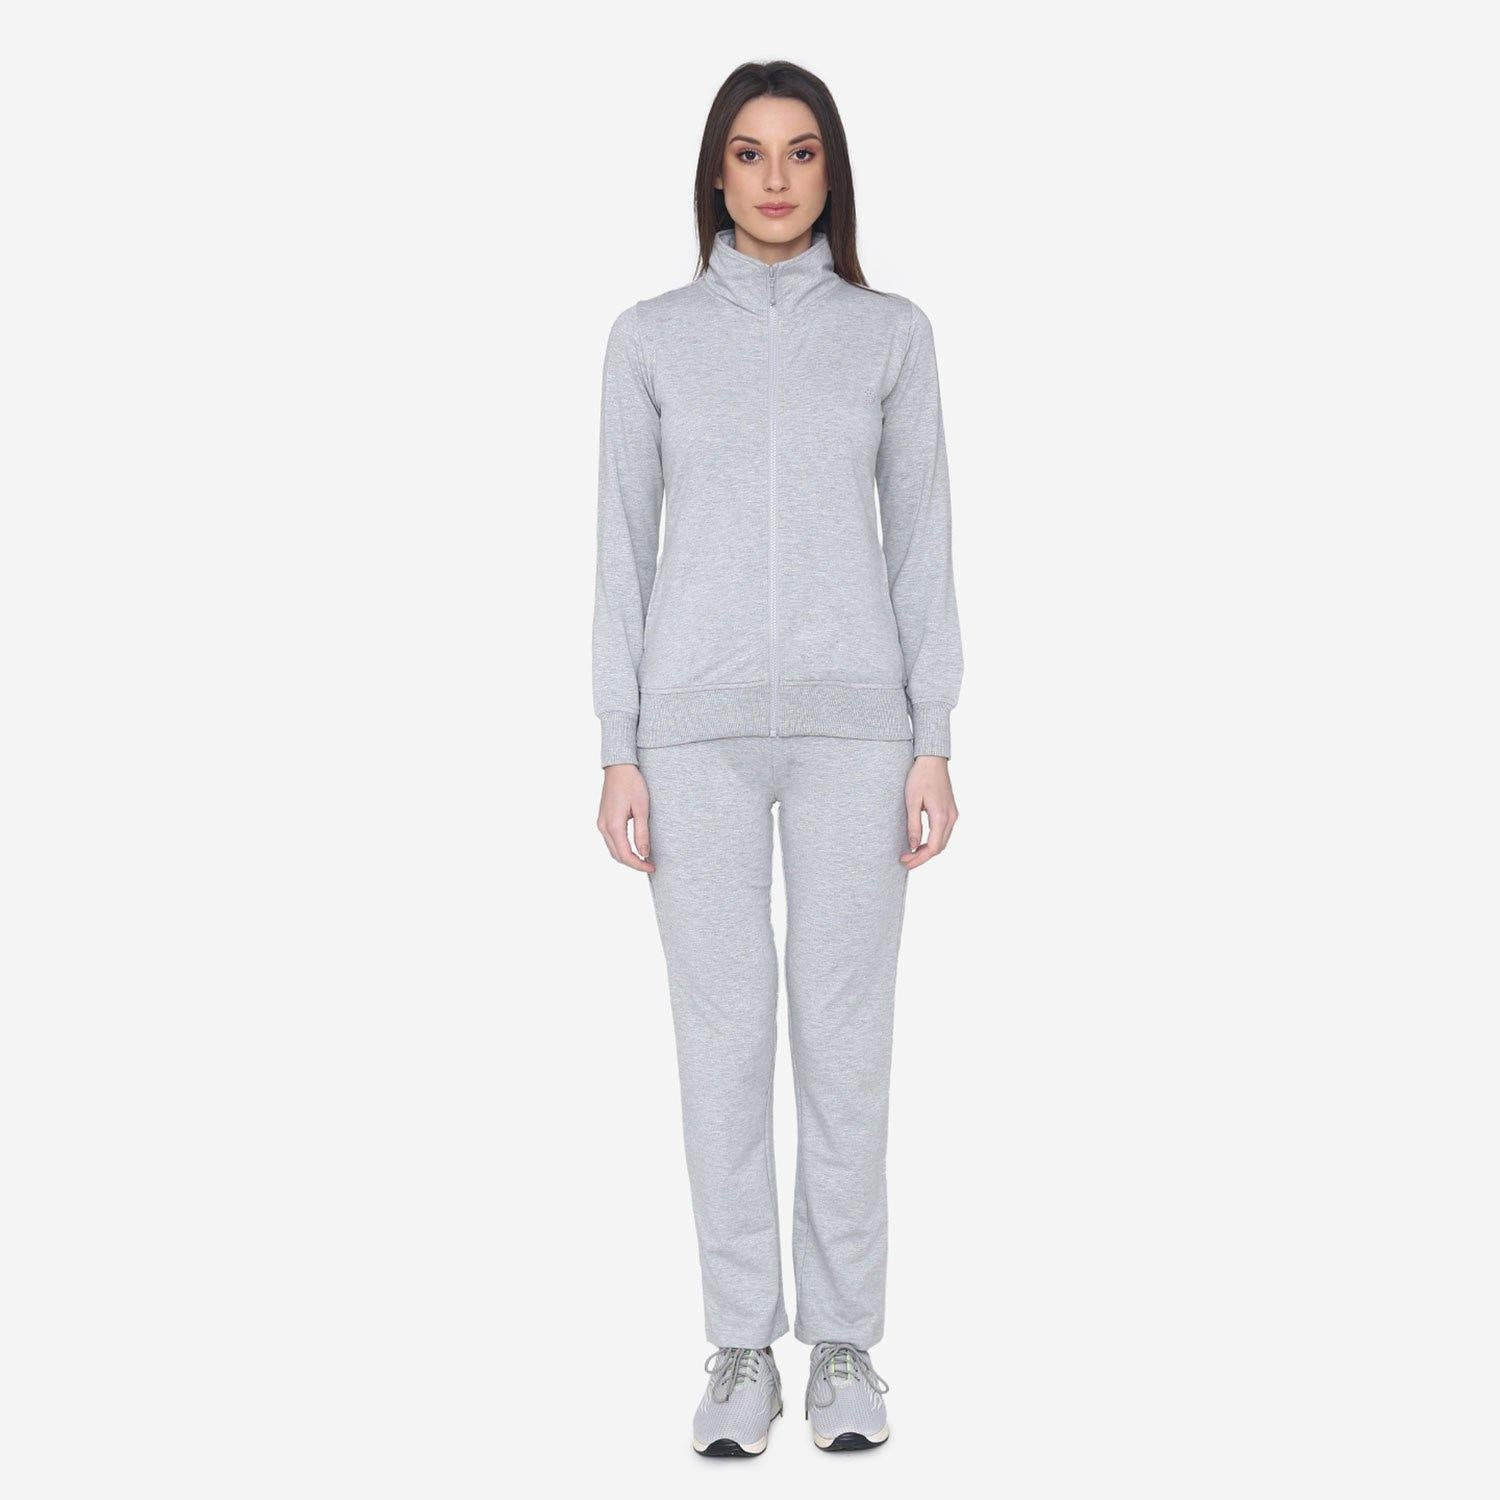 Women Tracksuit For Winter